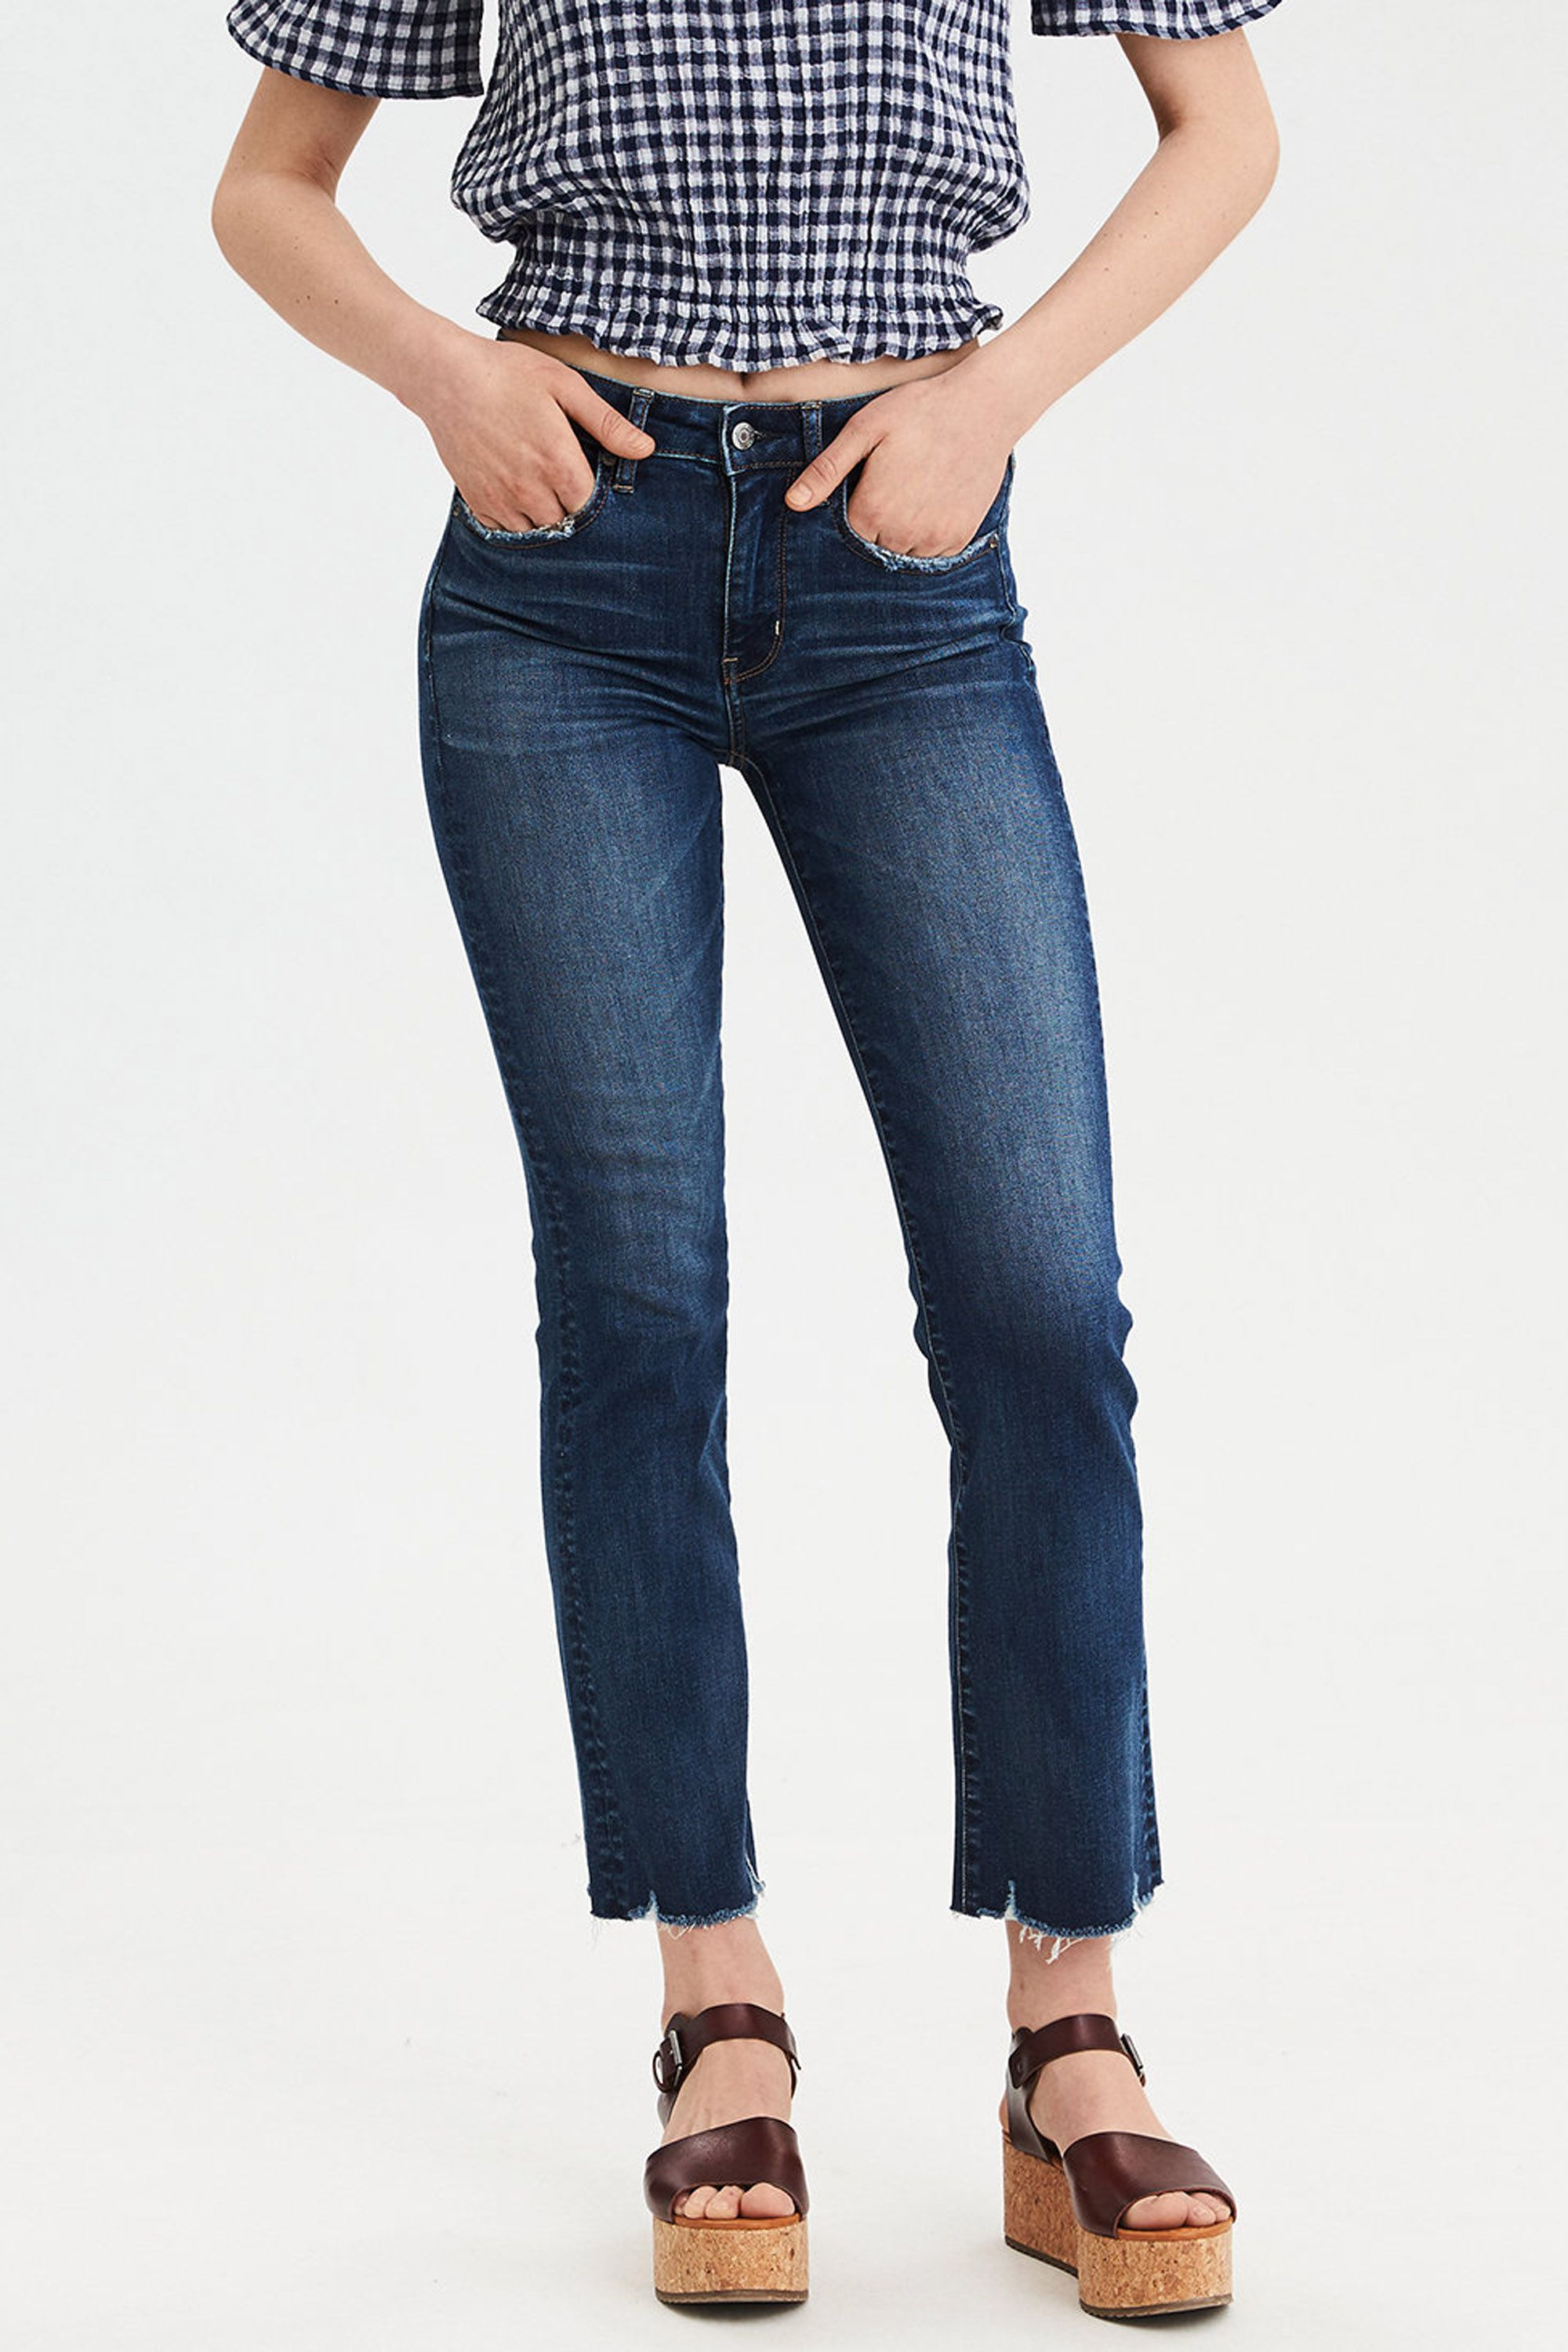 d04b8f63c93e11 These are the BEST high-waisted jeans for every body type.